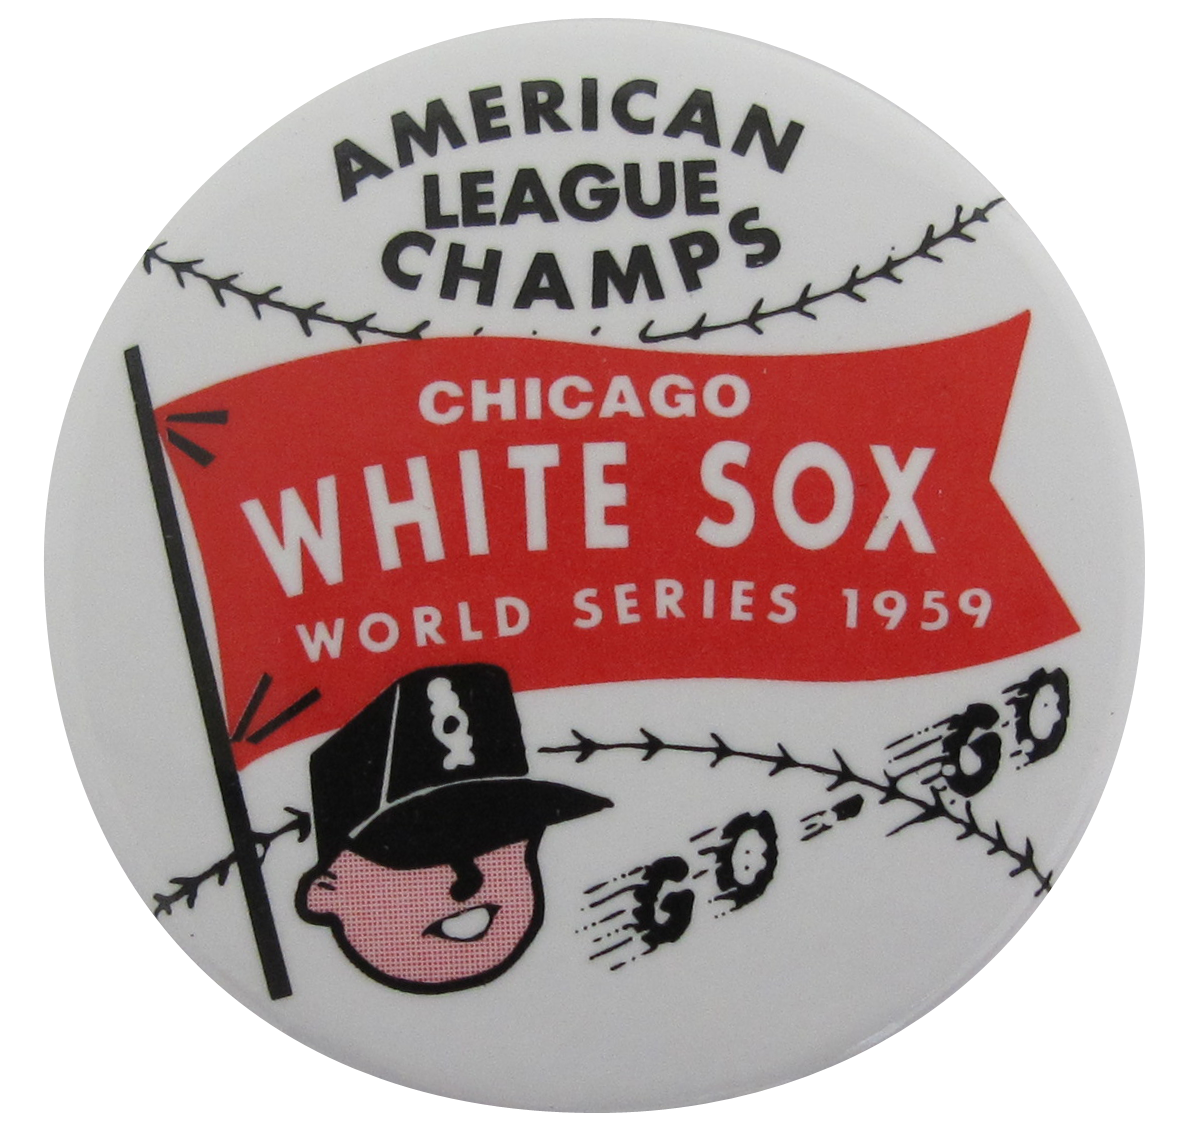 premium selection 9a134 7bc60 American League Champs Chicago White Sox World Series 1959 ...